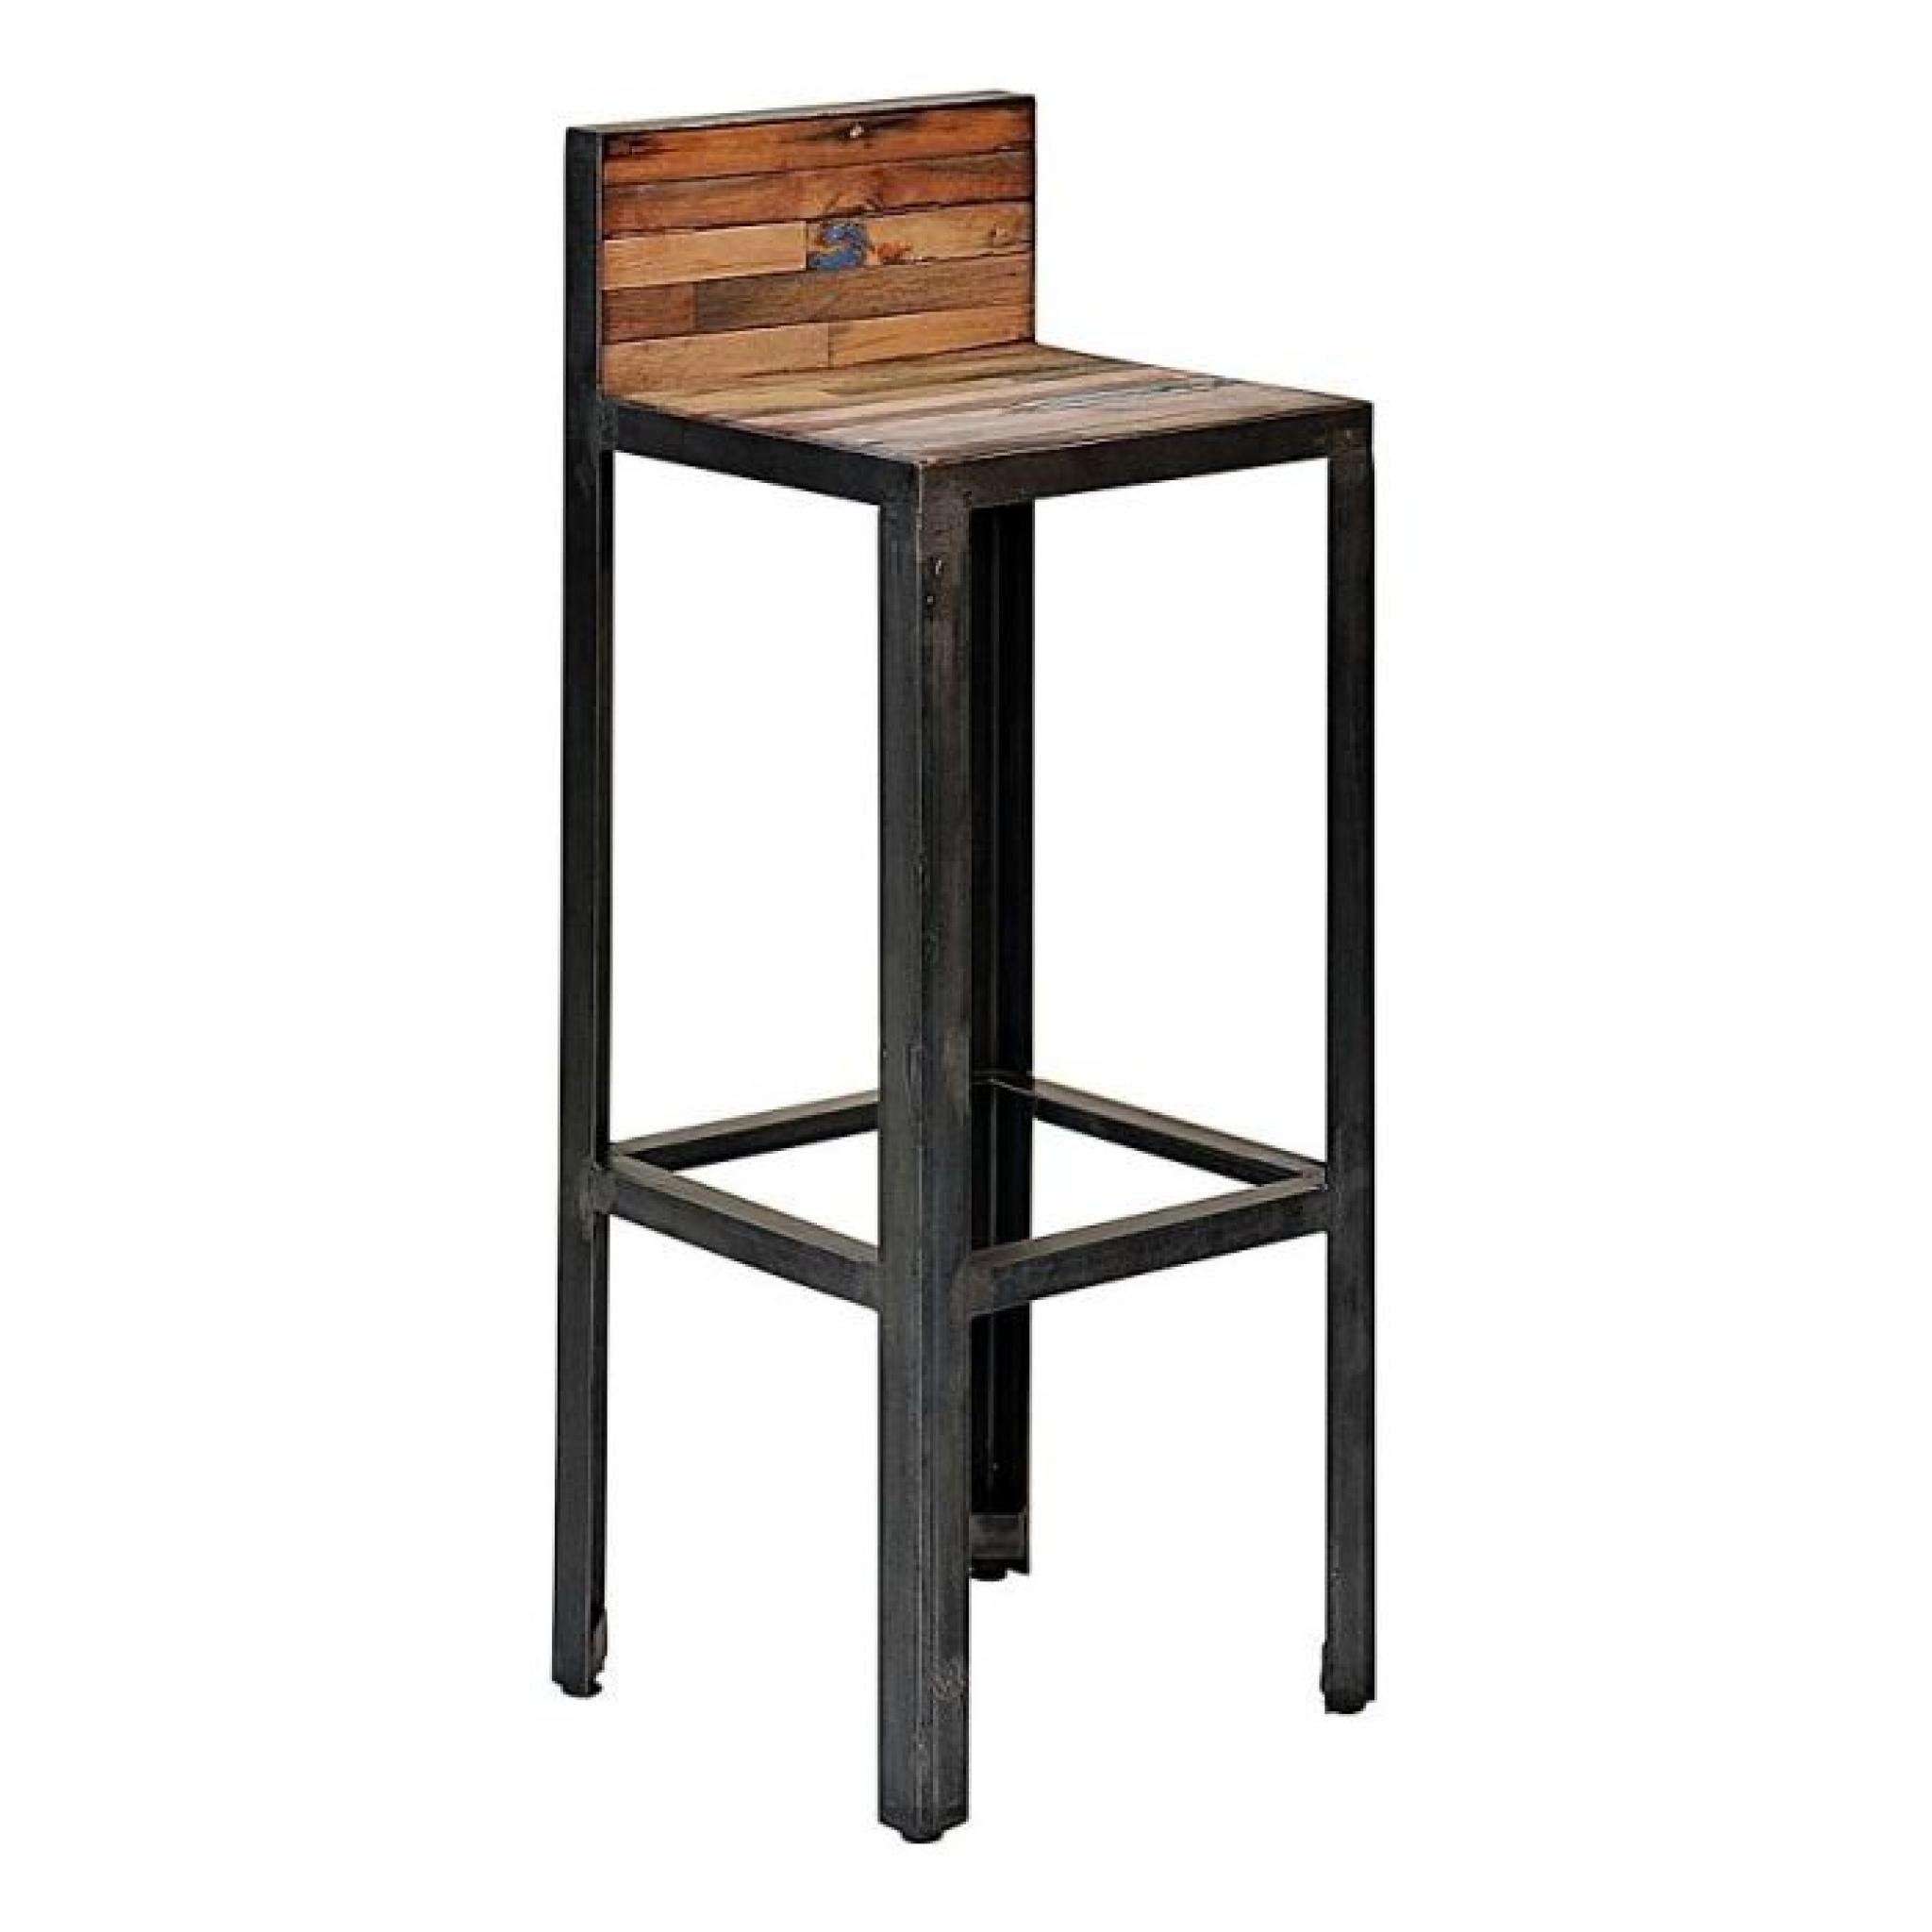 tabouret de bar avec dossier besi inwood achat vente tabouret de bar pas cher couleur et. Black Bedroom Furniture Sets. Home Design Ideas